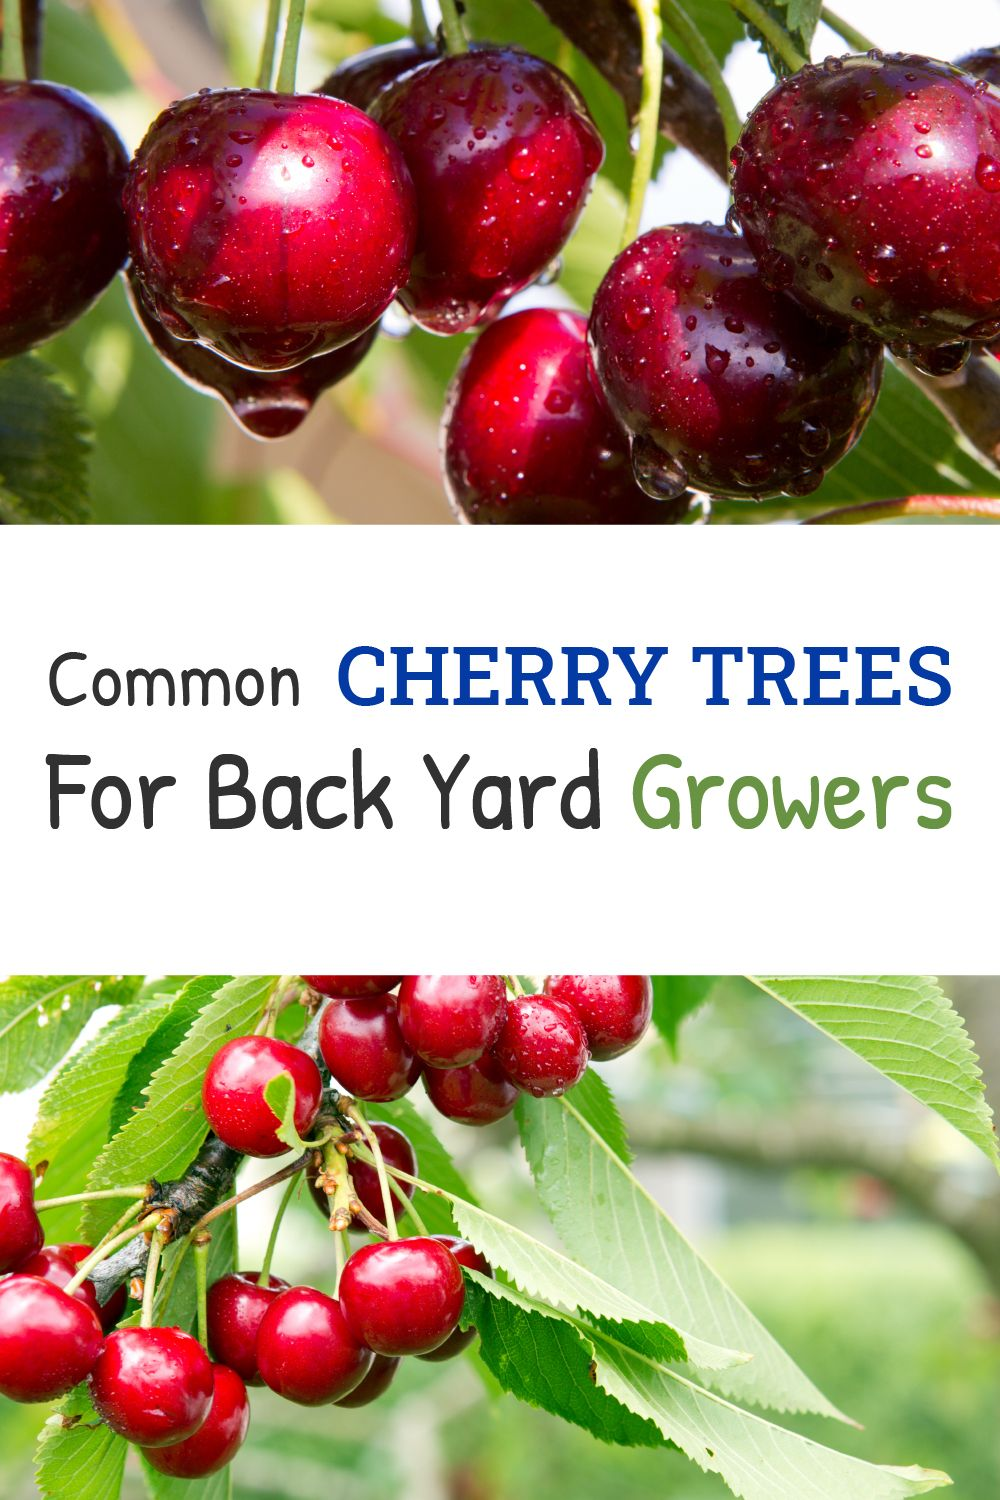 30 Cherry Varieties Common Cherry Trees For Back Yard Growers Luv2garden Com Cherry Tree Home Grown Vegetables Chokeberry